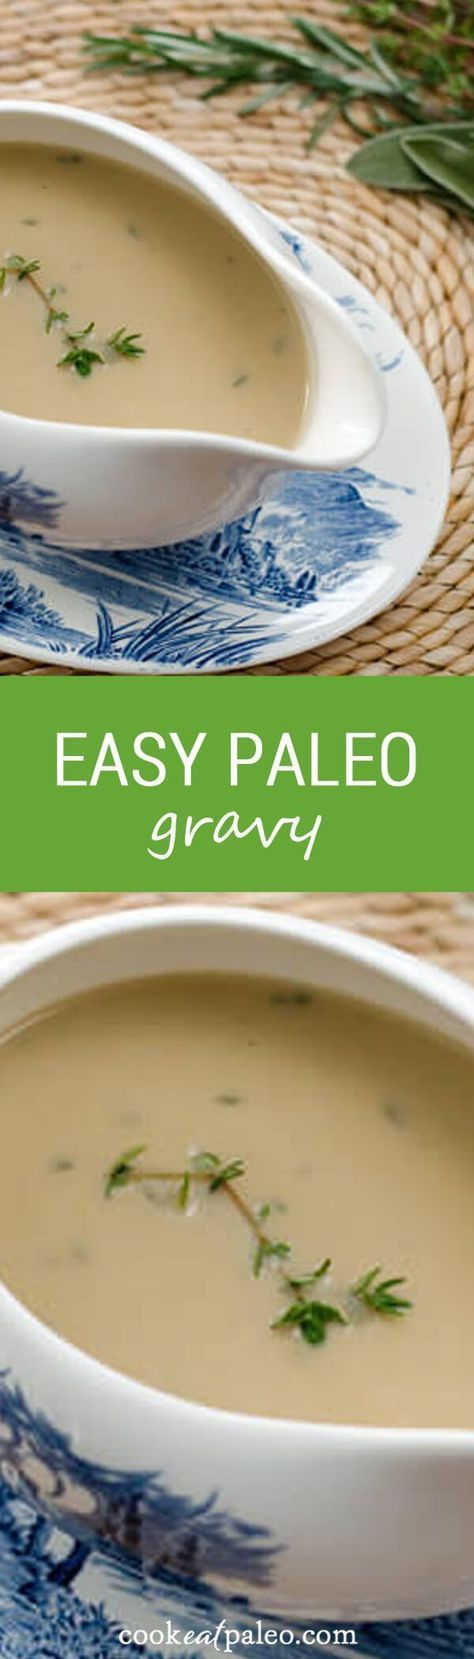 This easy paleo gravy recipe uses pureed vegetables, pan drippings and fresh herbs for that traditional Thanksgiving gravy flavor. It's gluten-free and grain-free! #paleogravy #gravyrecipe #thanksgivingrecipe